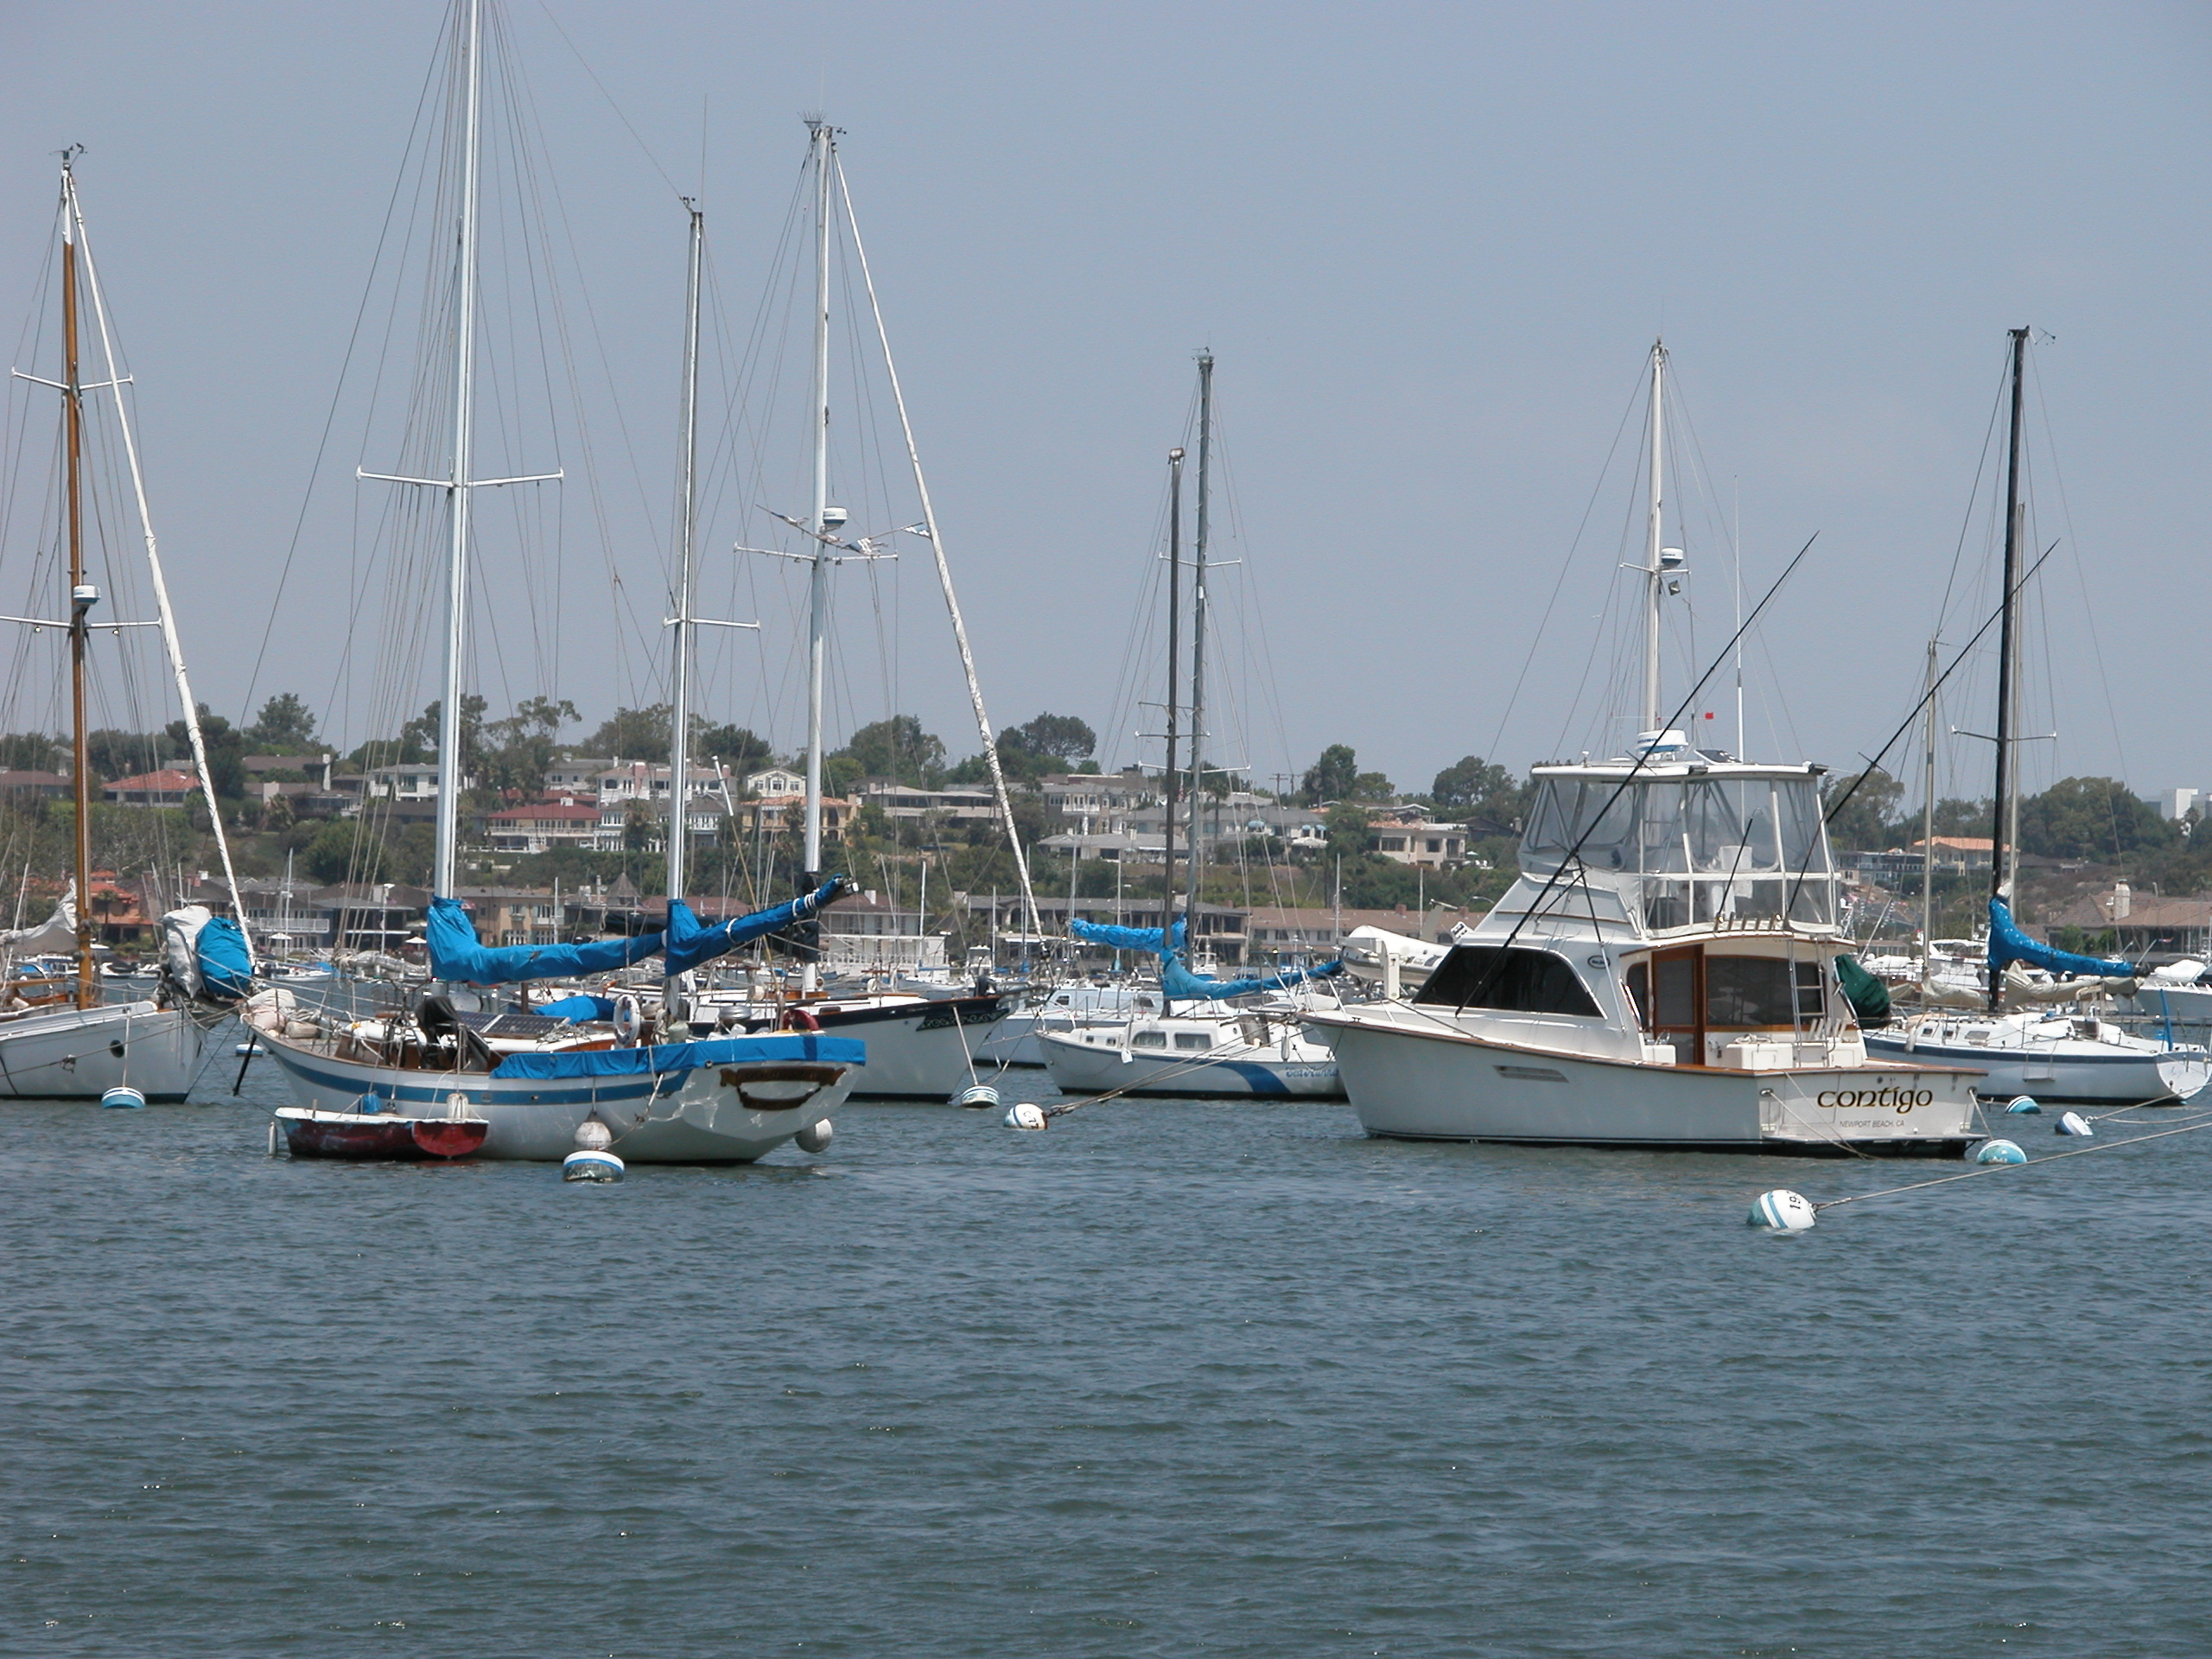 Floating Docks May Replace Newport's Moorings